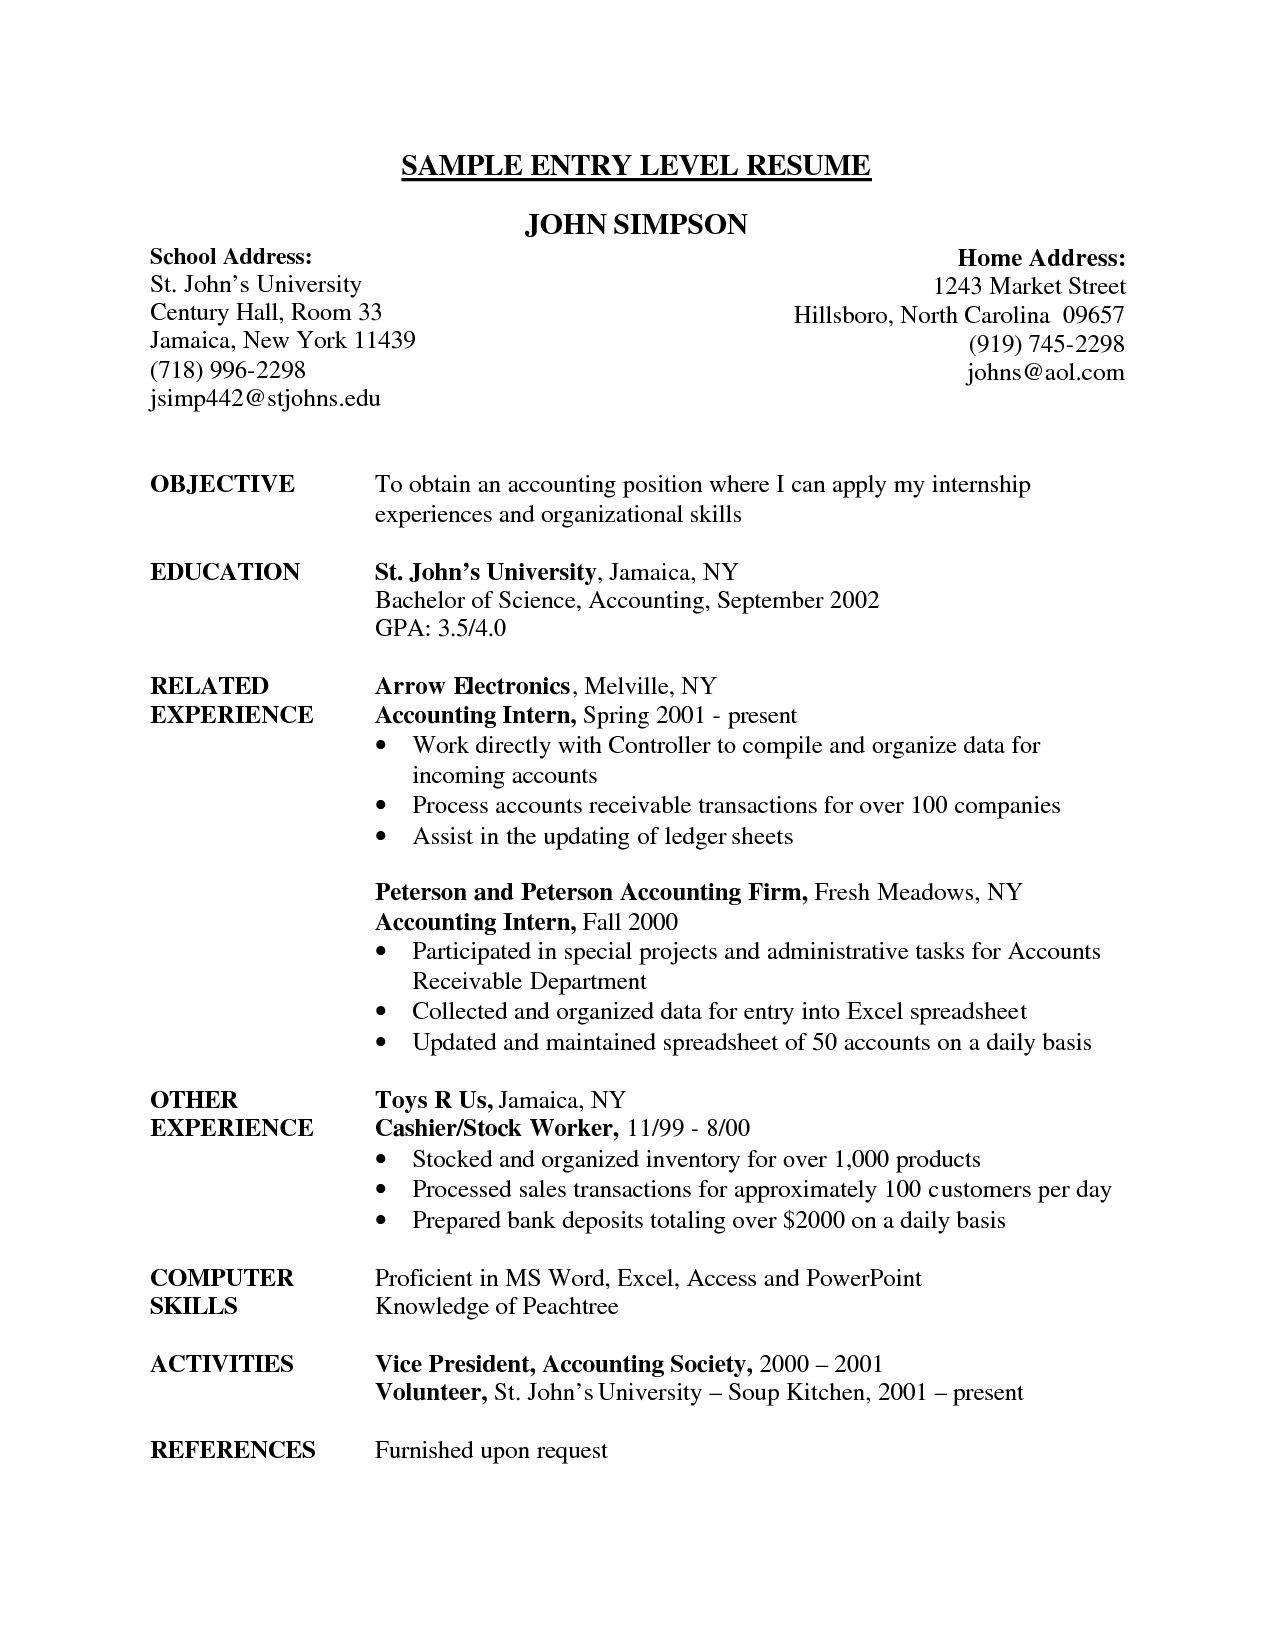 create cover letter military civilian resume sample template chef objective examples the most marketing entry level